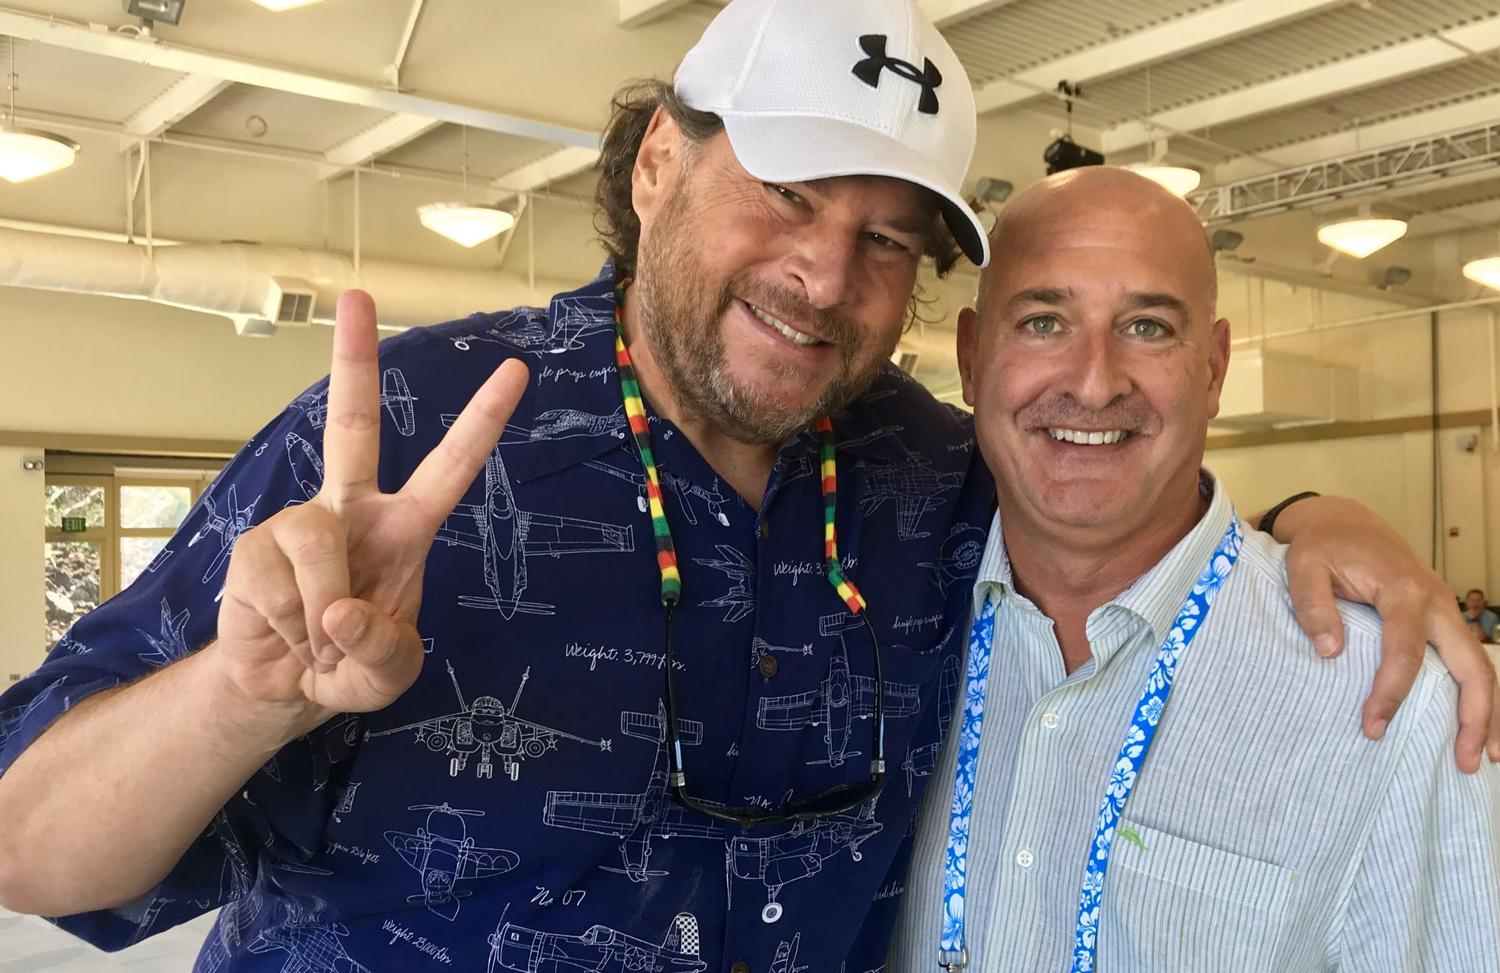 Marc Benioff sole CEO of Salesforce after Keith Block steps down